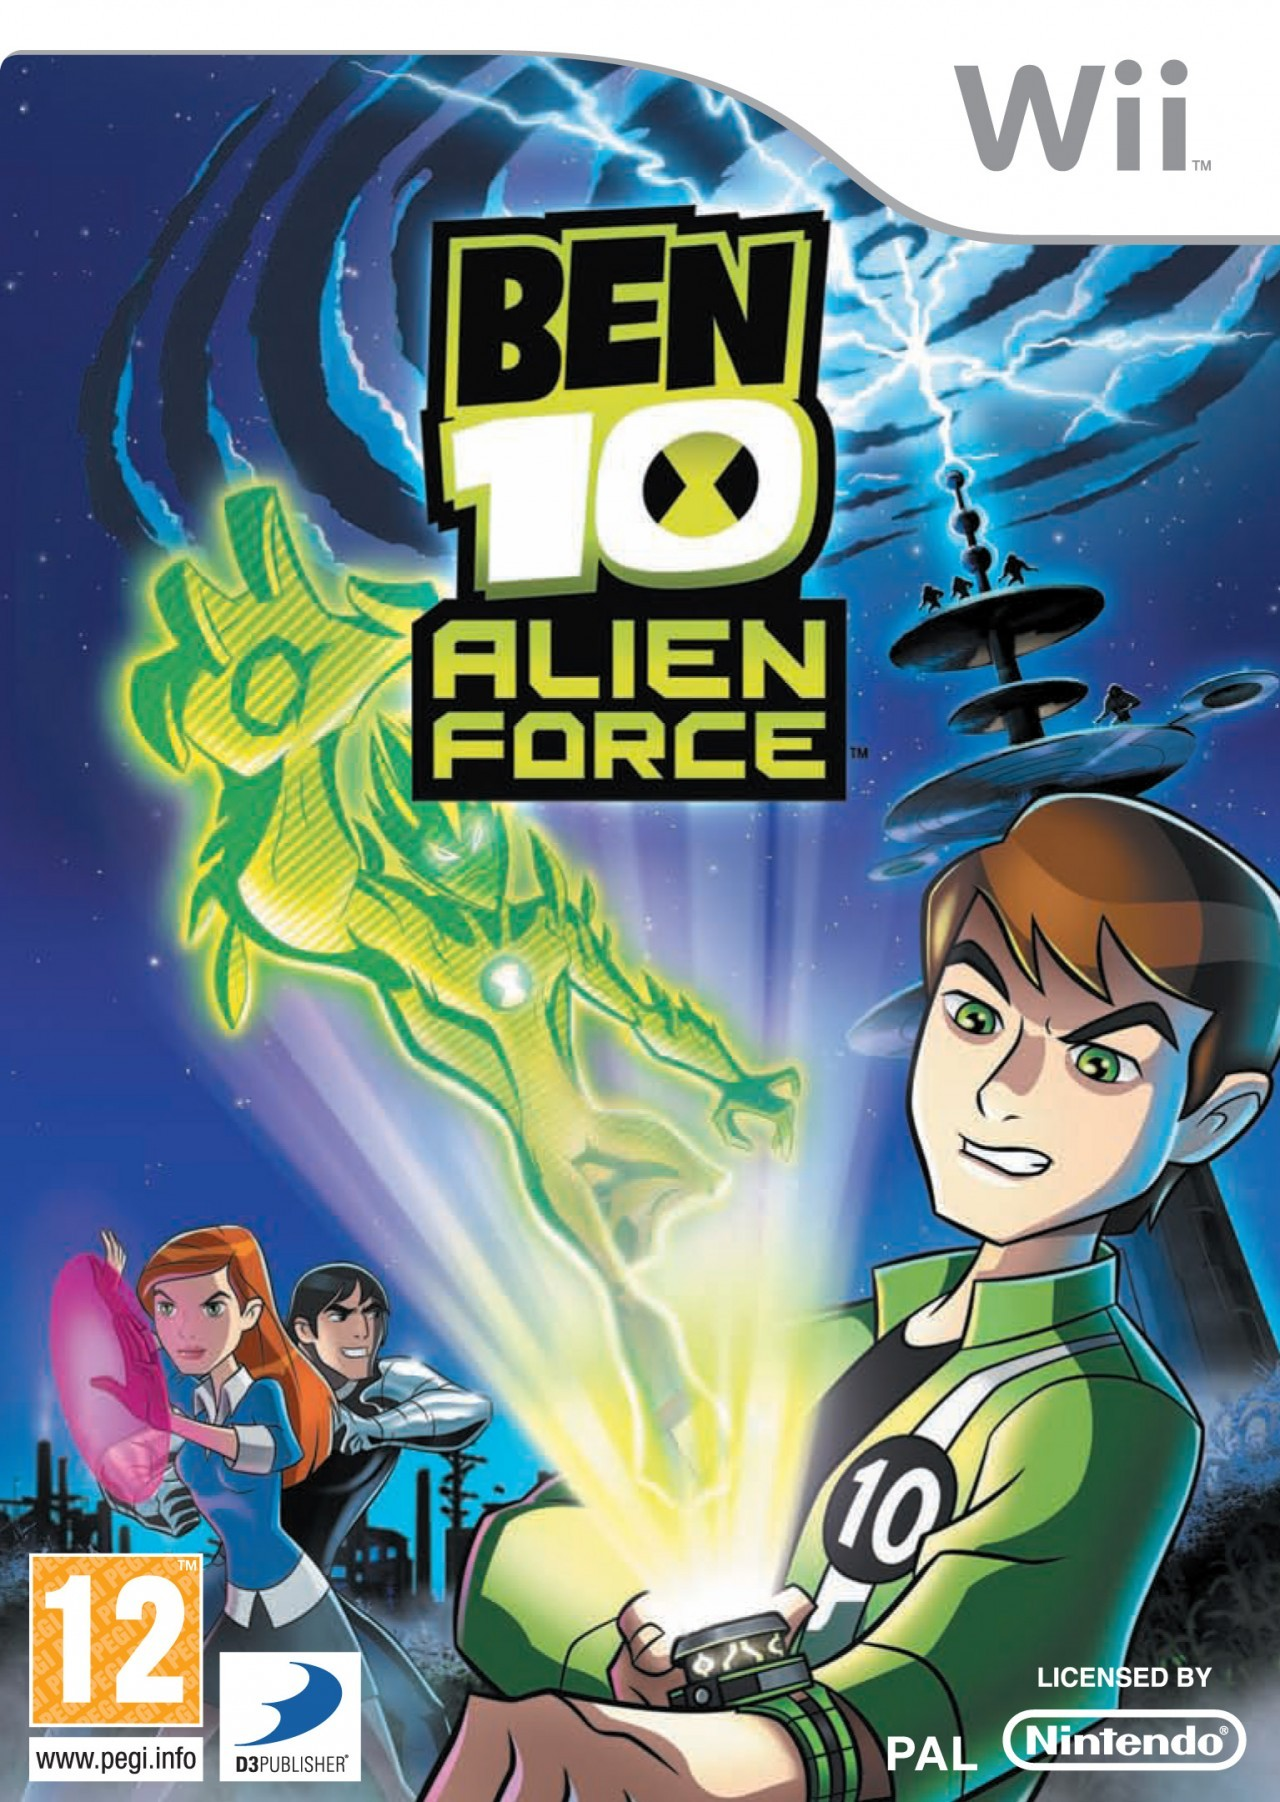 Ben 10 uzaylilar pictures free download - Jeux b10 alien force gratuit ...